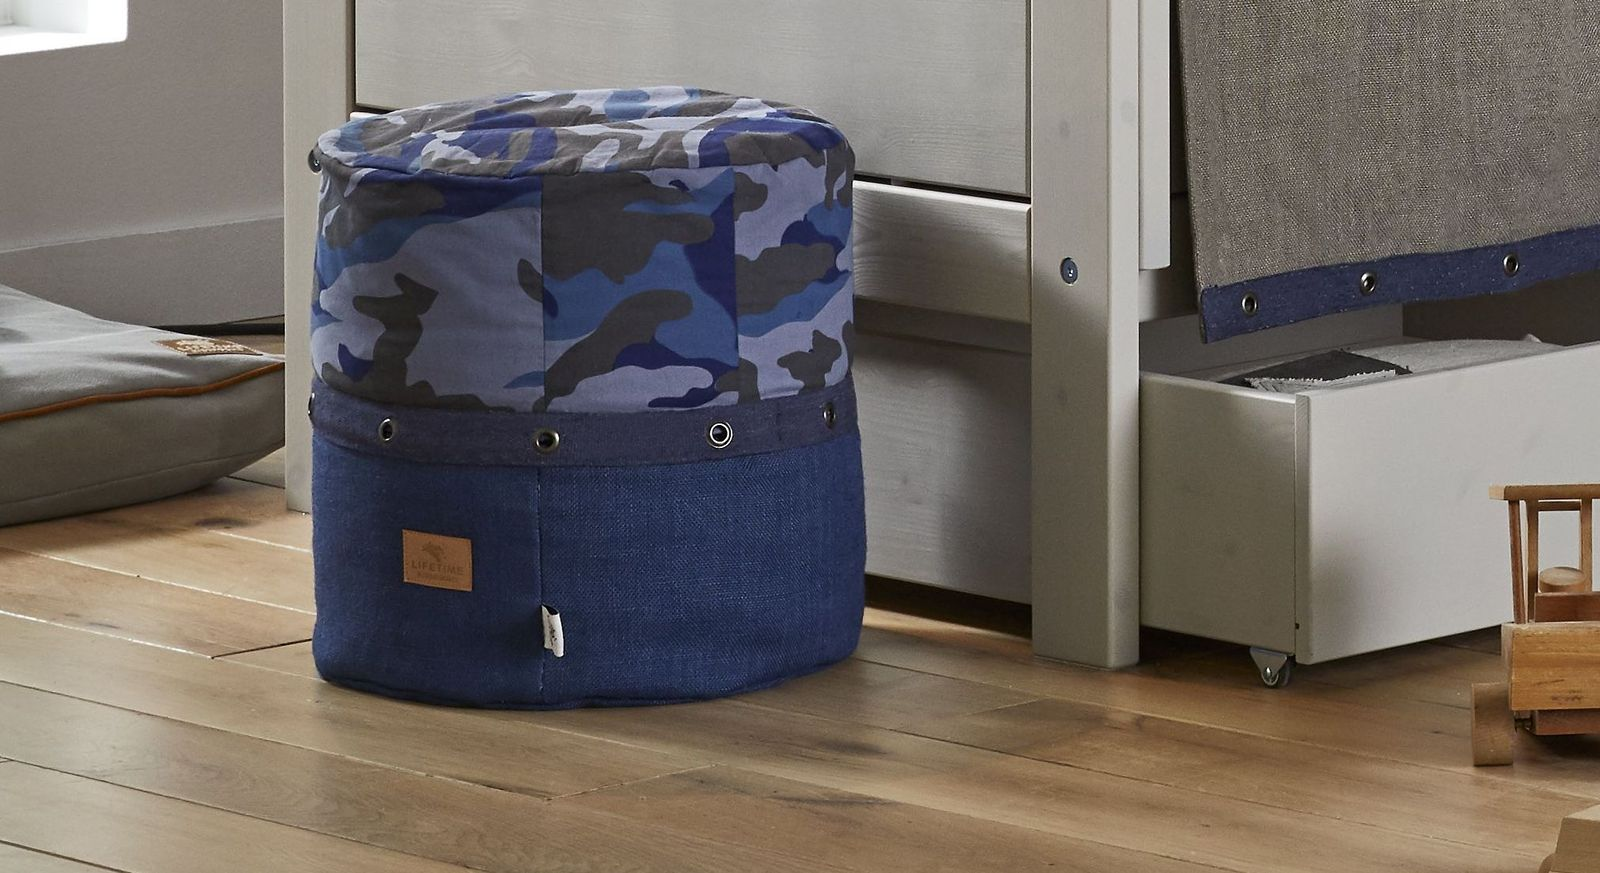 LIFETIME Sitzpouf Camouflage in Blau